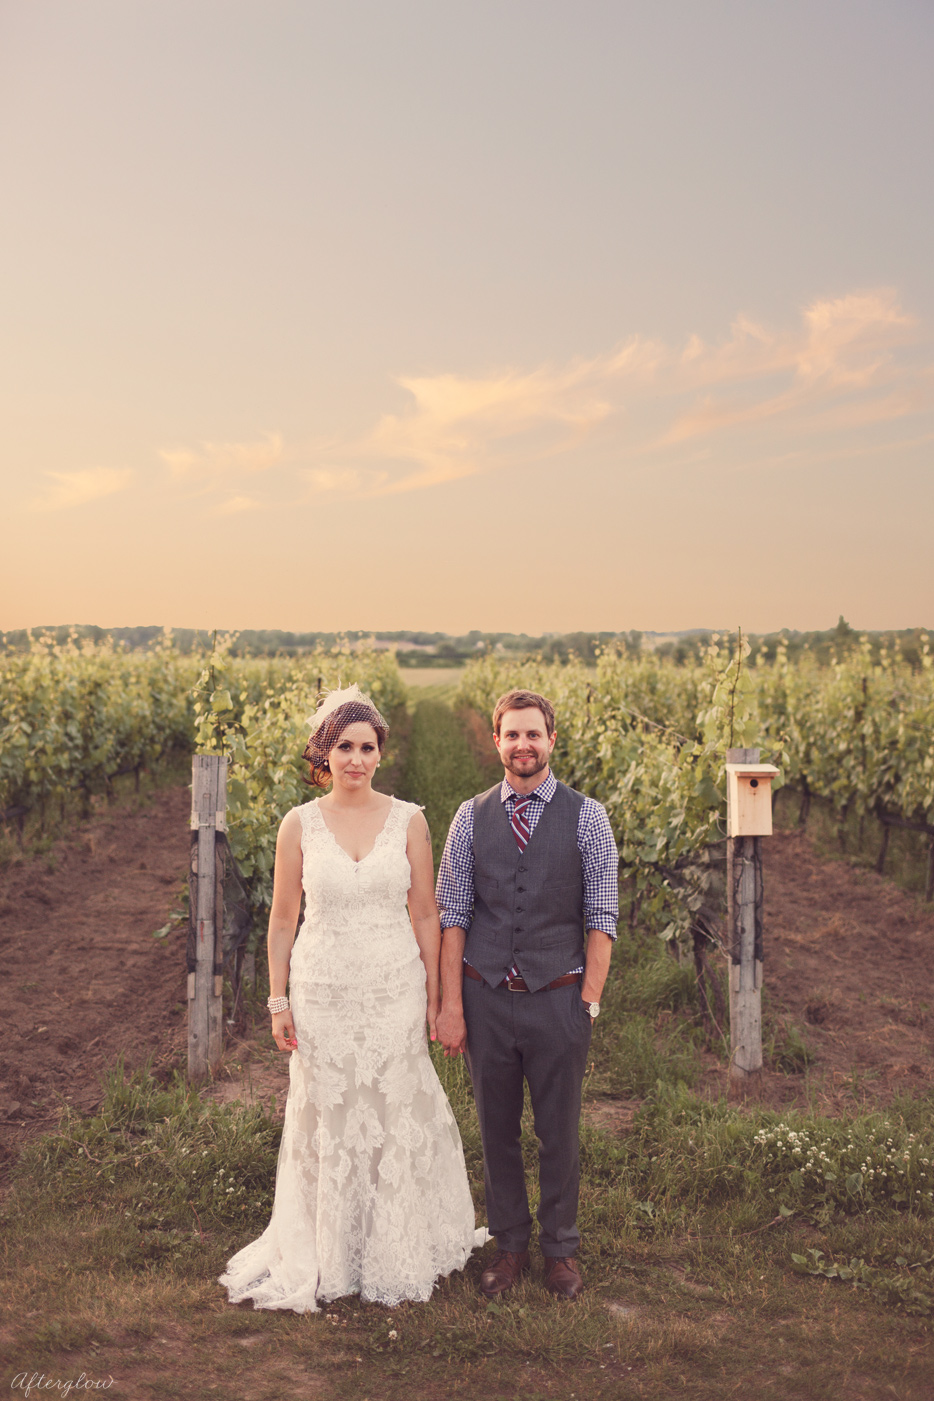 Afterglow_ShelbyAdam_Ravine_Vineyard_Wedding_Photography_Niagara083.jpg